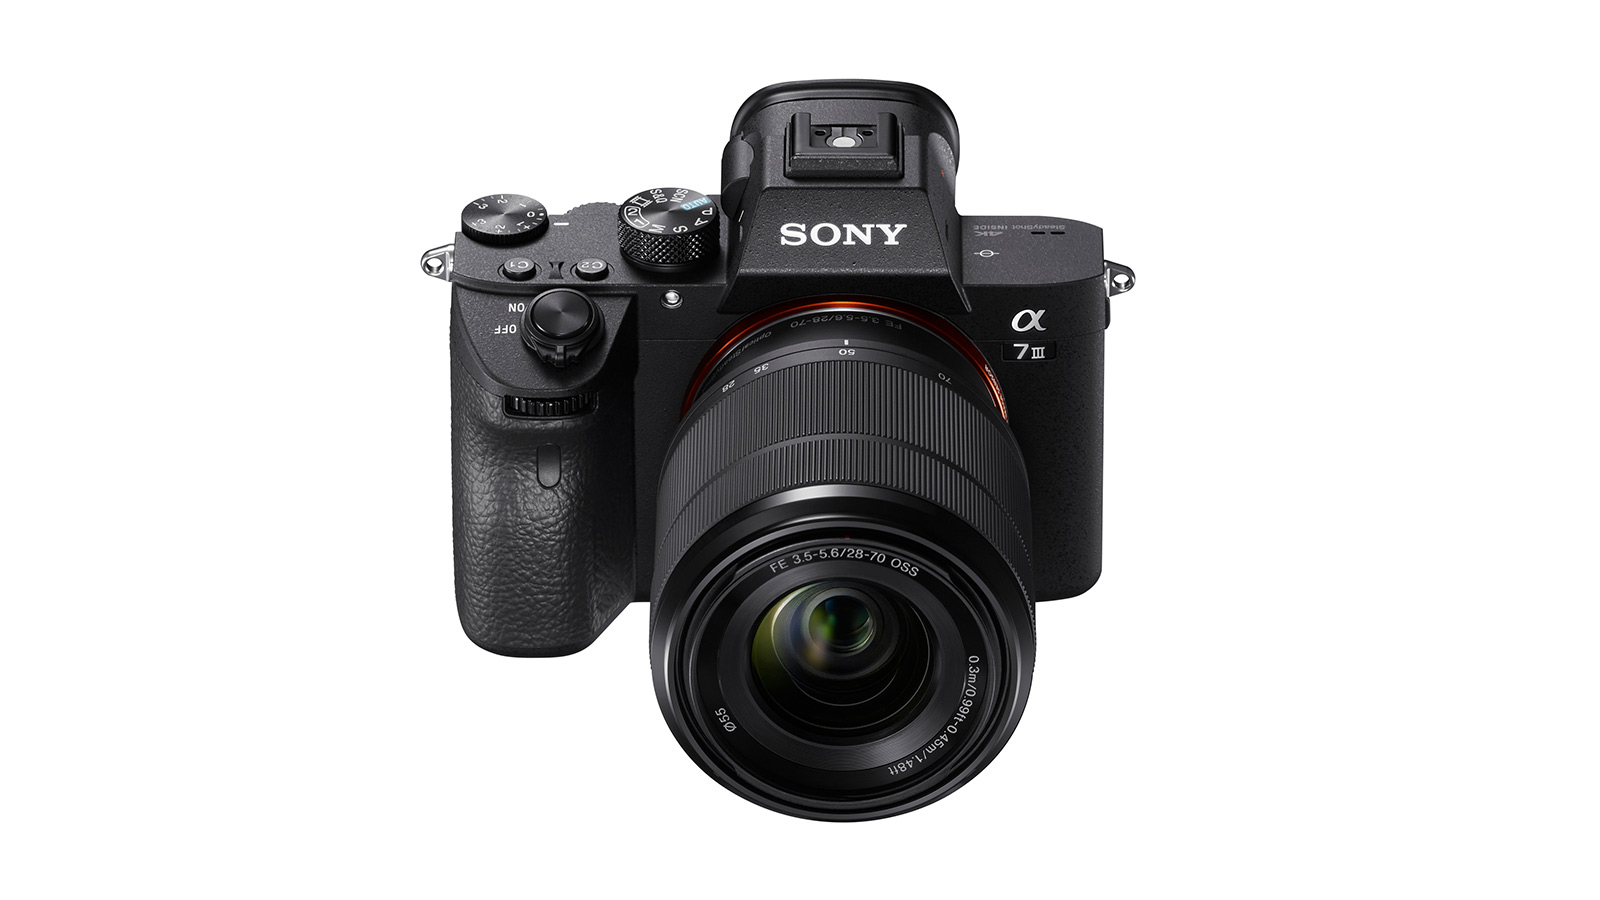 Sony's New a7 III/a7R III Firmware Adds New Features Like Real-time Eye AF